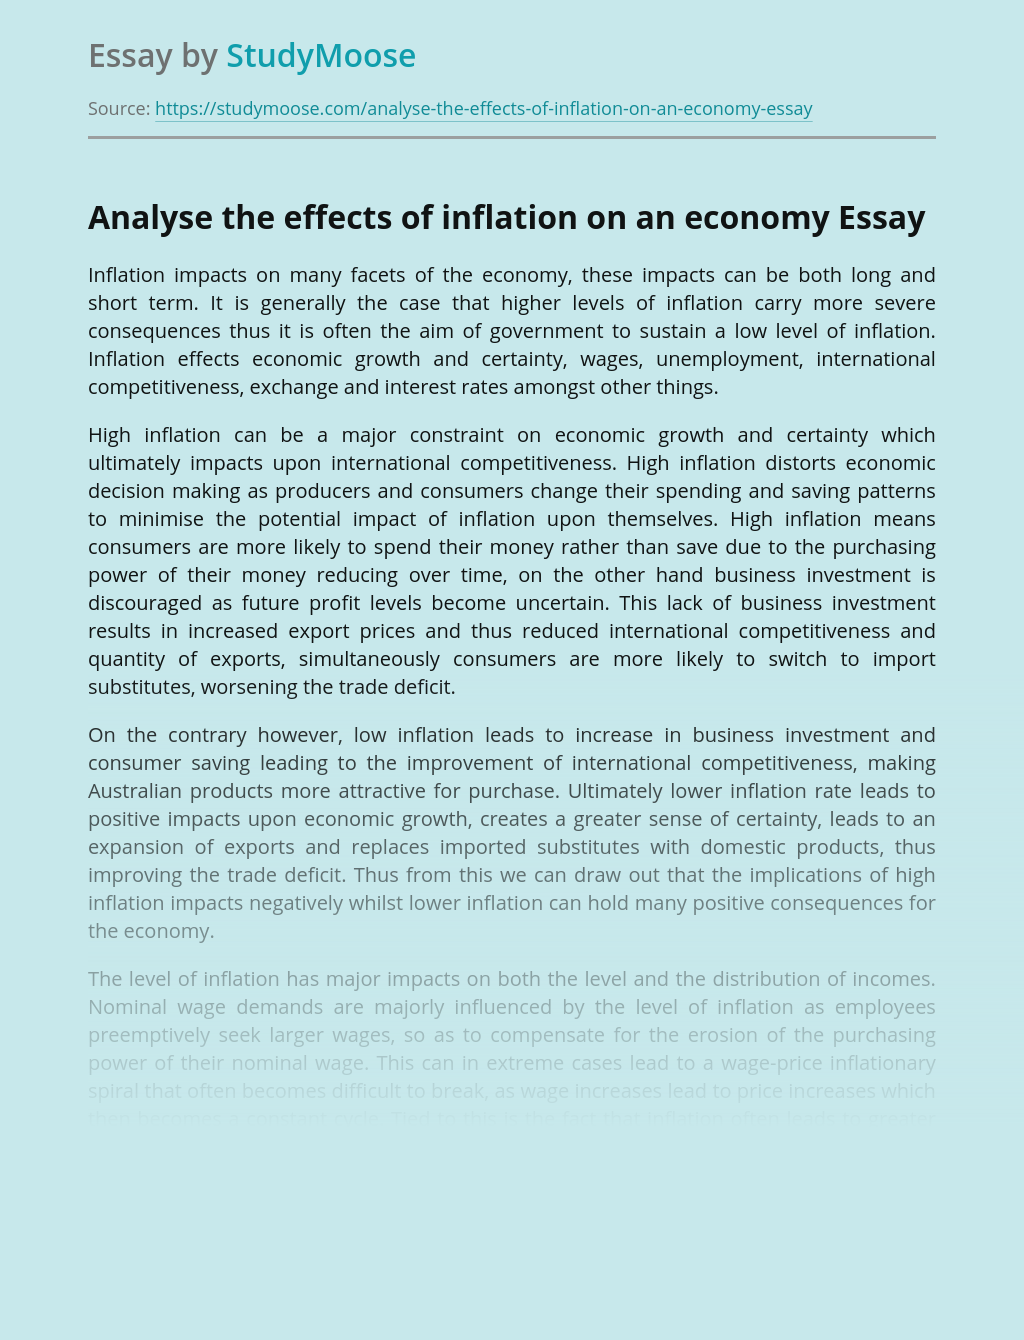 Analyse the effects of inflation on an economy